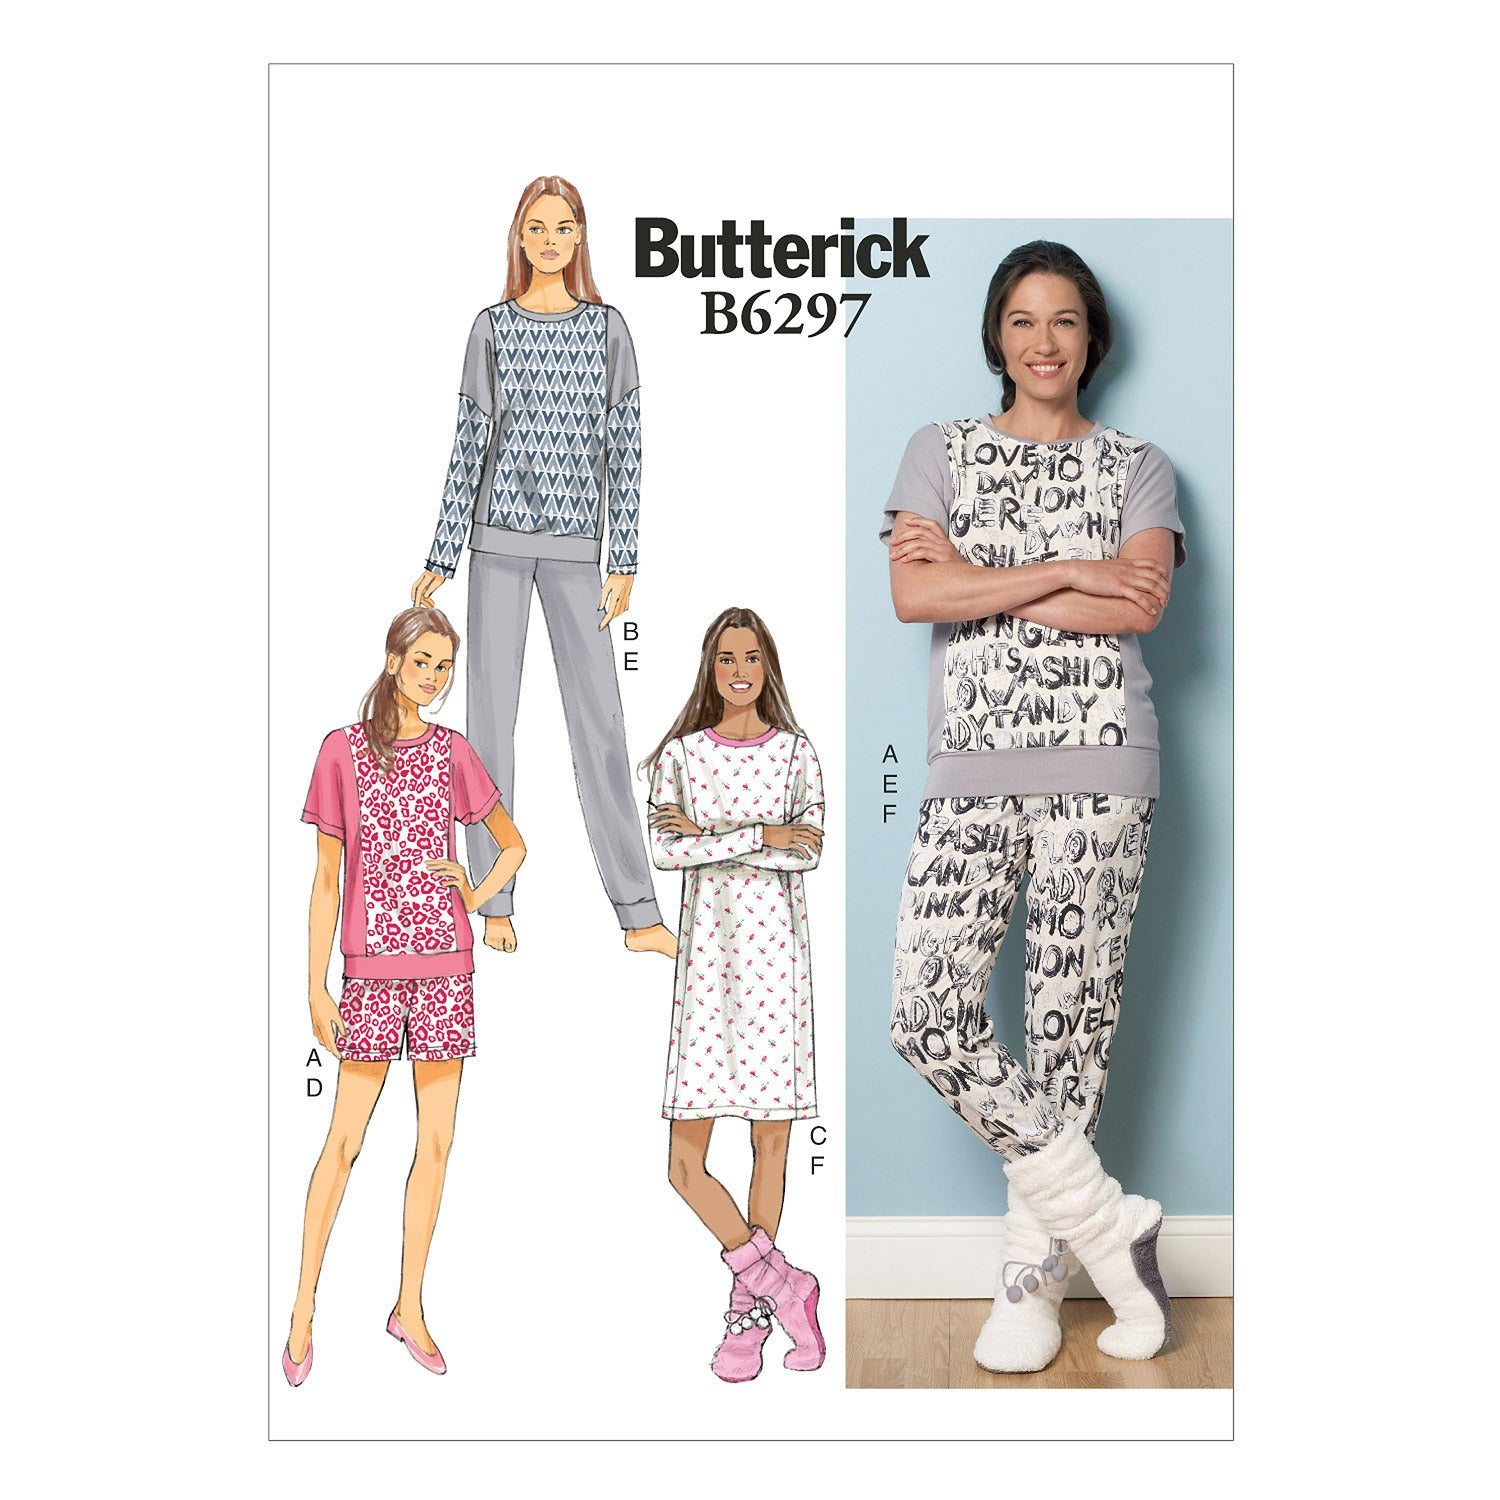 Butterick B6297ZZ0 Misses' Top, Dress, Shorts, Pants and Lounge Socks LRG-XLG-XXL